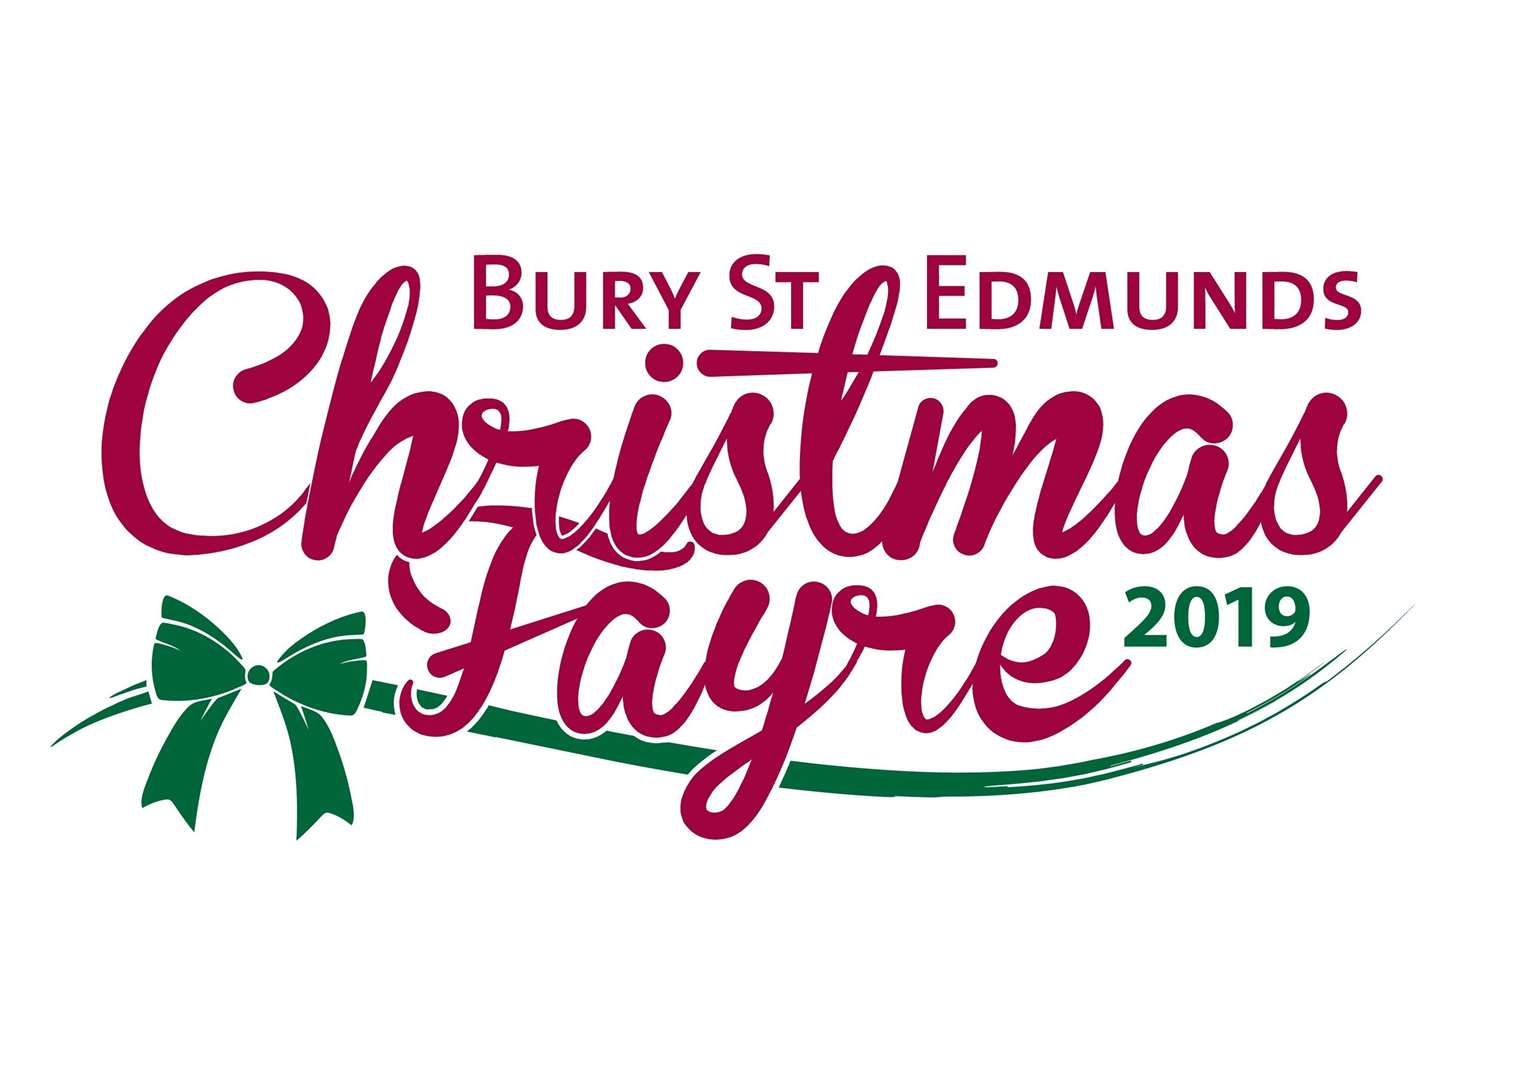 INTERACTIVE MAP: Everything you need to know about Bury St Edmunds Christmas Fayre